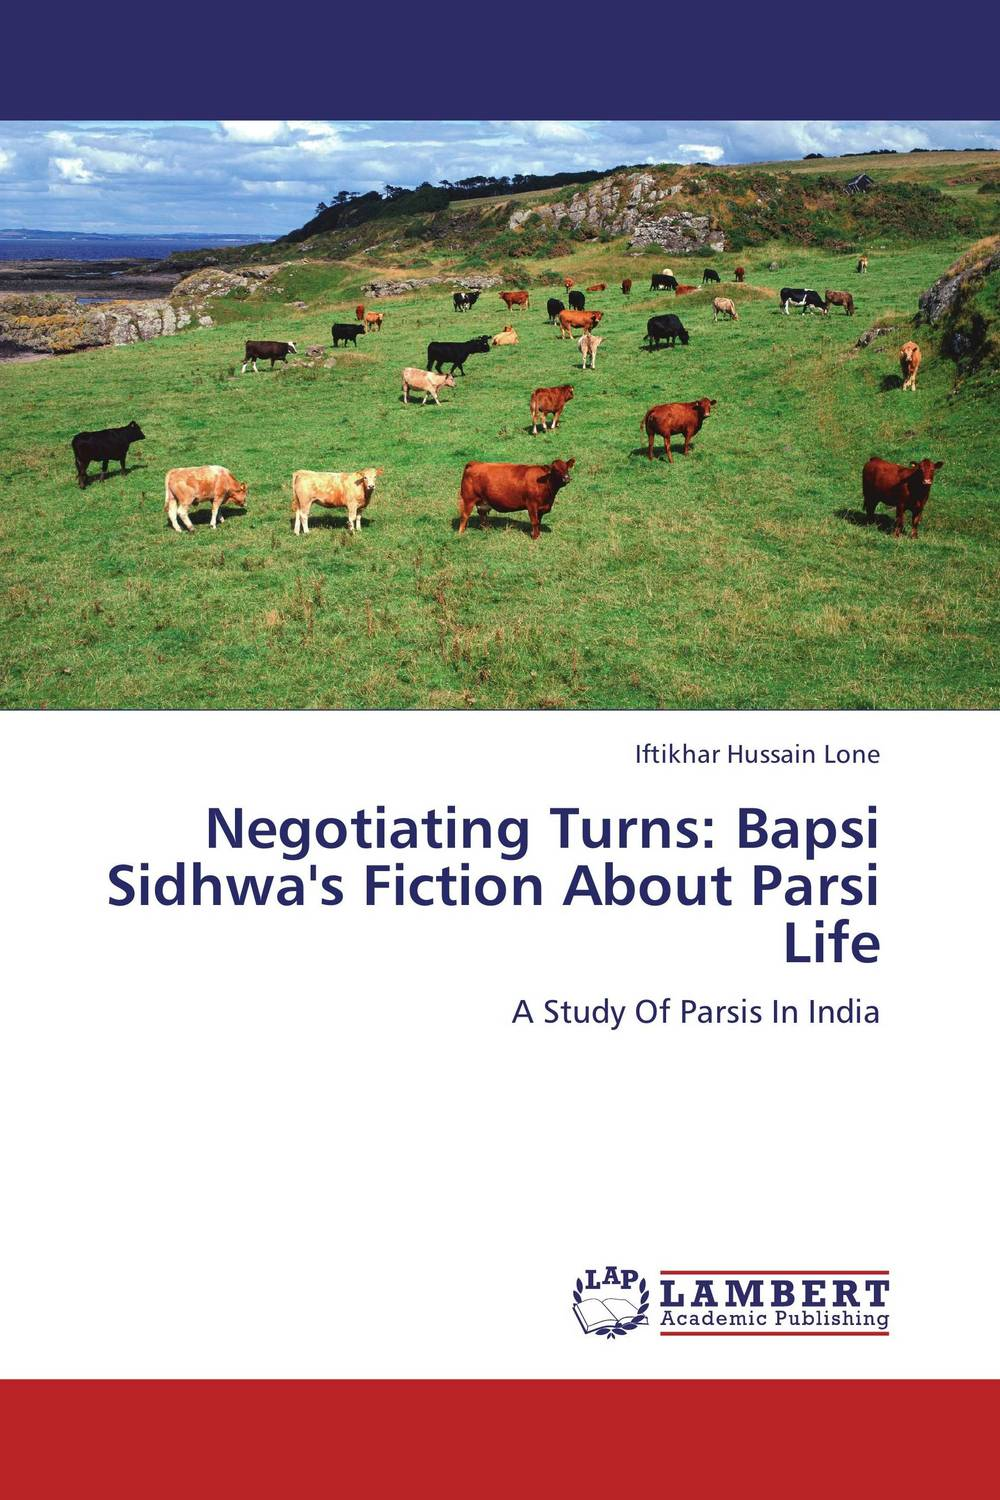 Negotiating Turns: Bapsi Sidhwa's Fiction About Parsi Life faulks on fiction